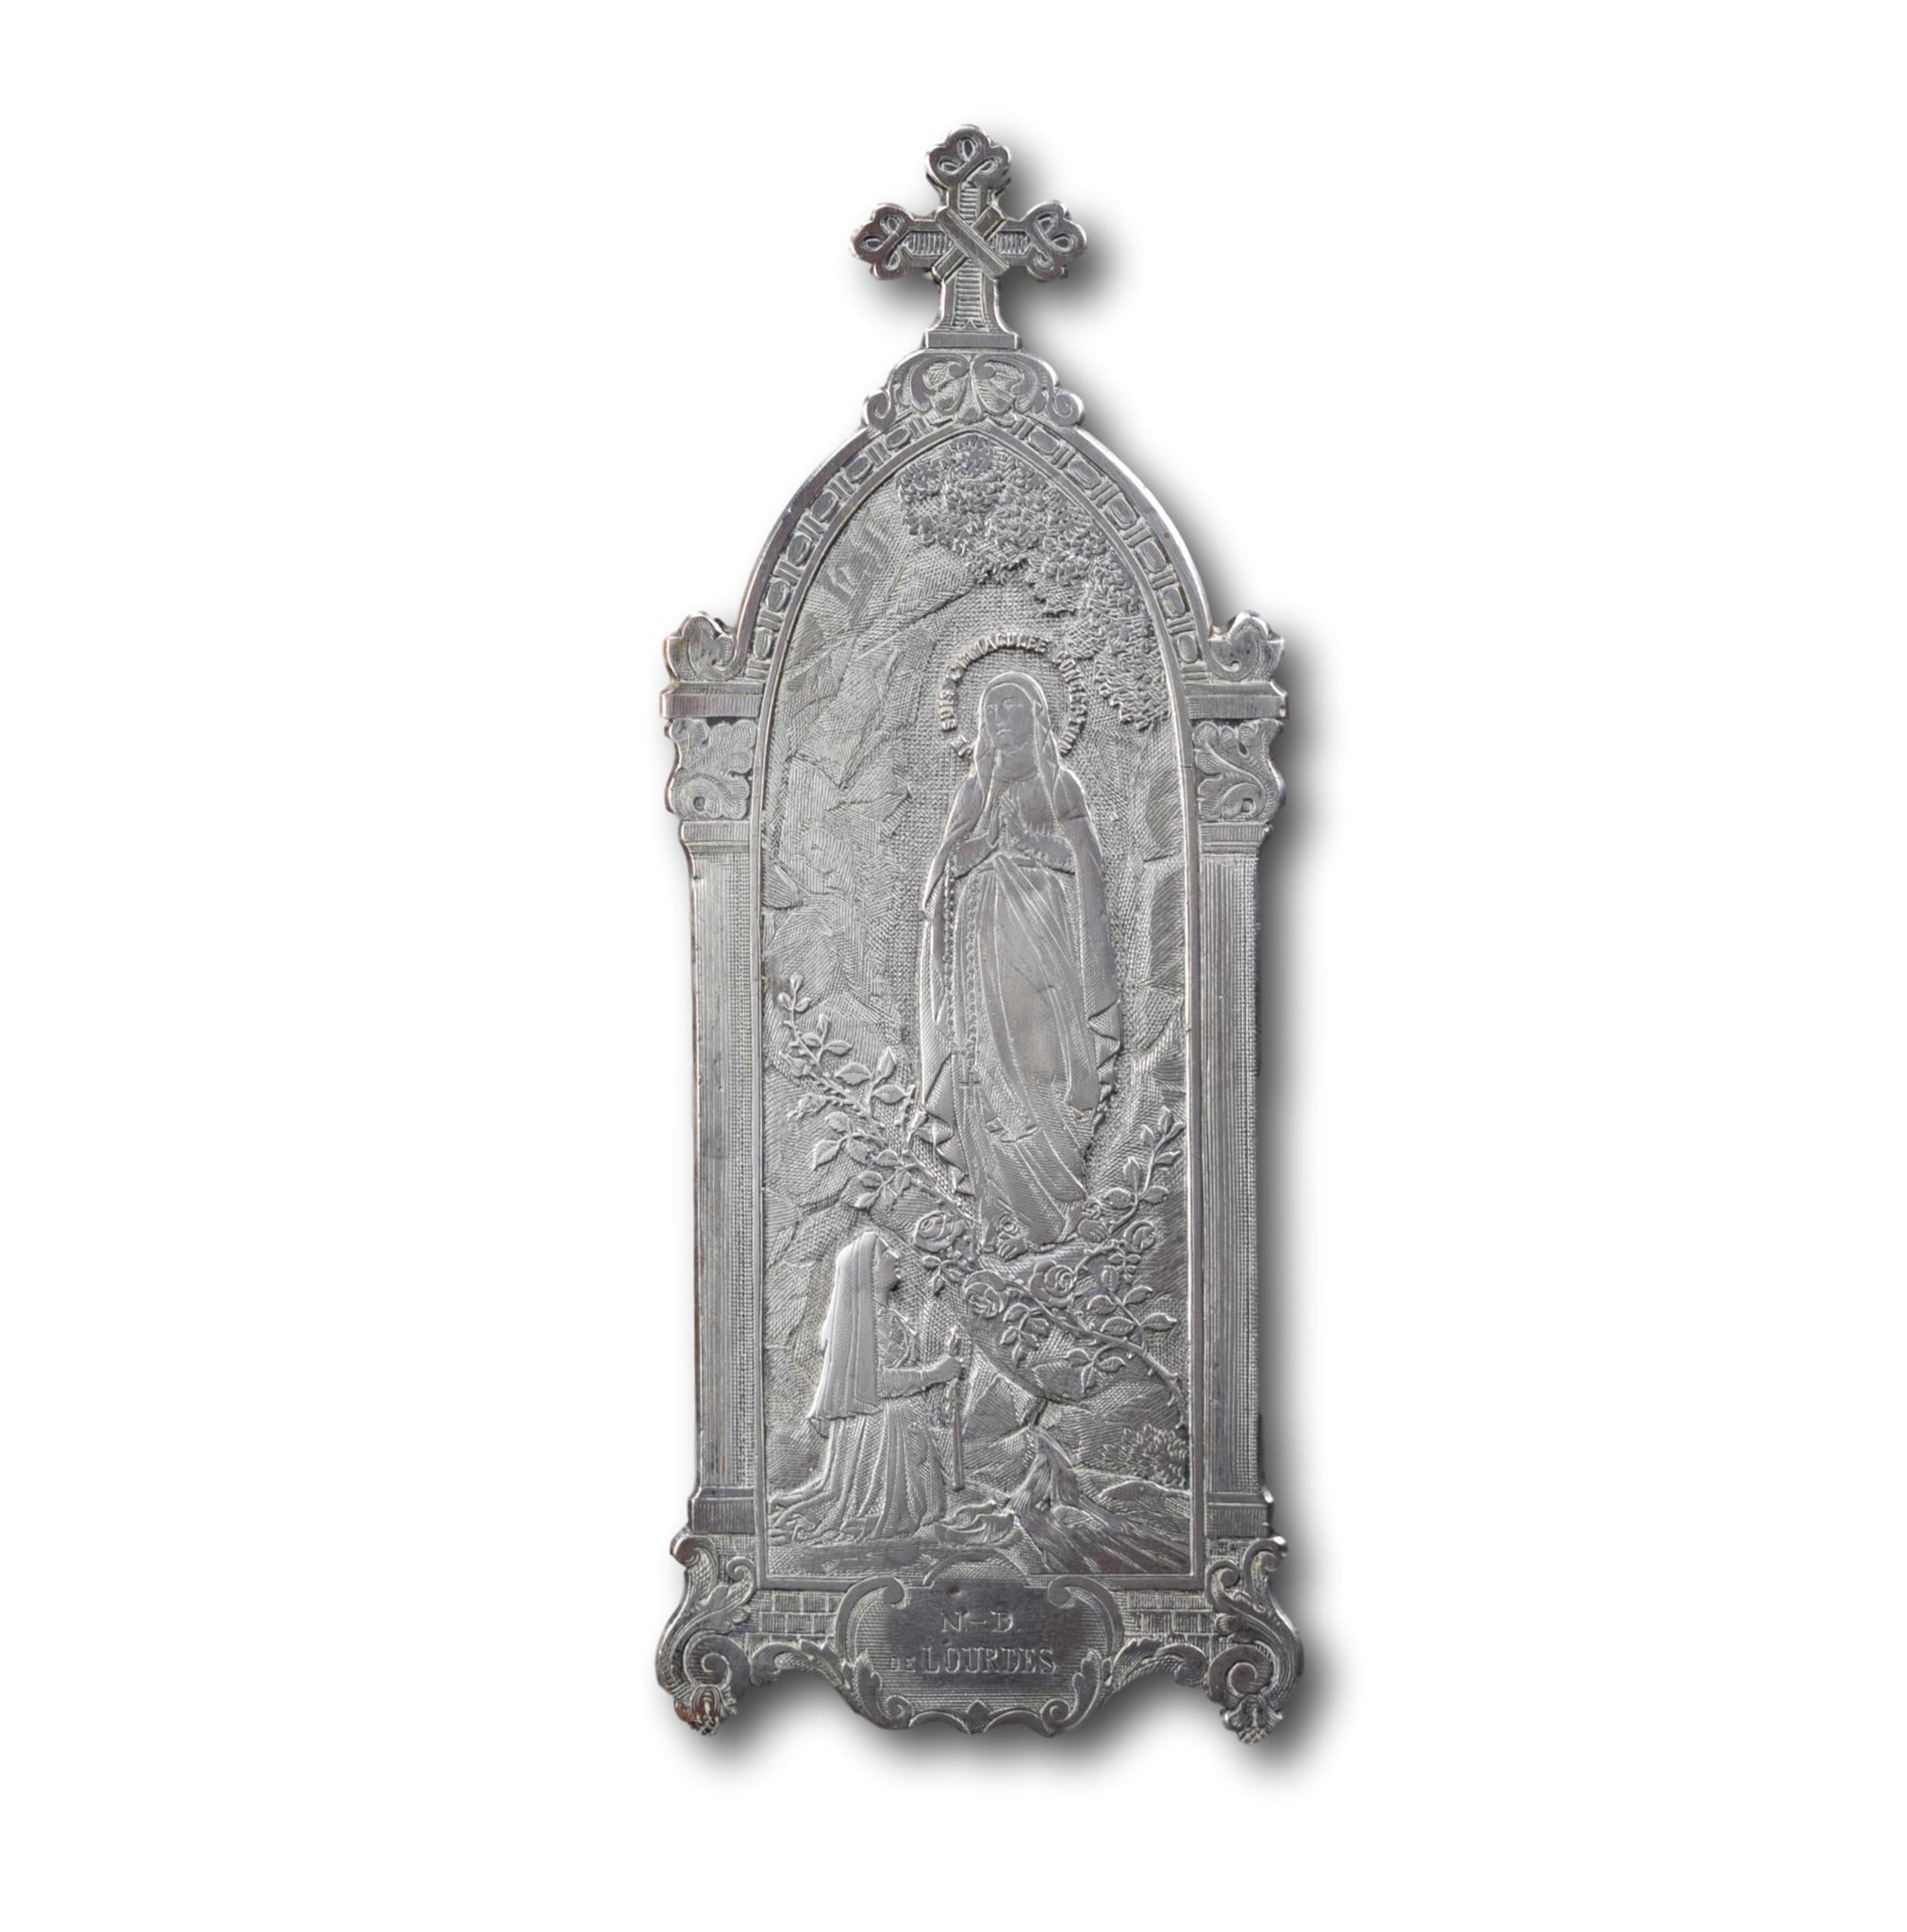 Notre Dame de Lourdes Standing Plaque, French Religious Engraved Lourdes Grotto Oratory, Silver Engraved Wicker Style, St Bernadette